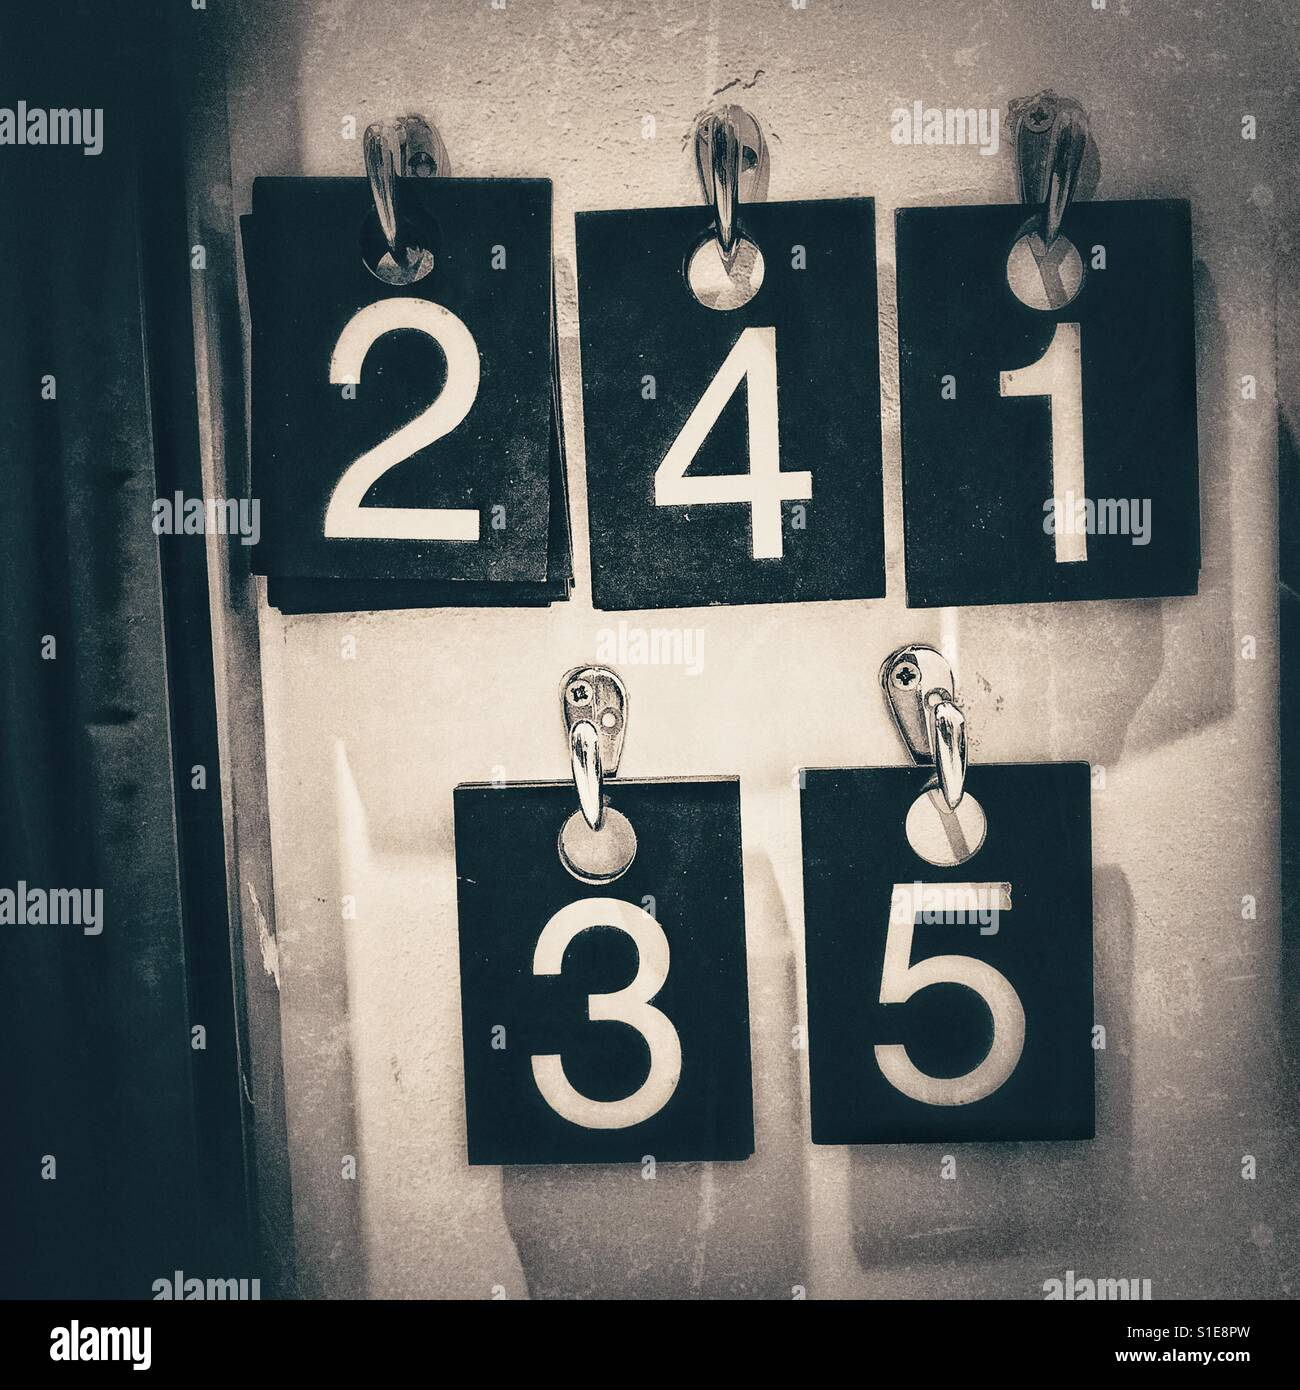 Fitting room numbers for clothing items in black and white - Stock Image